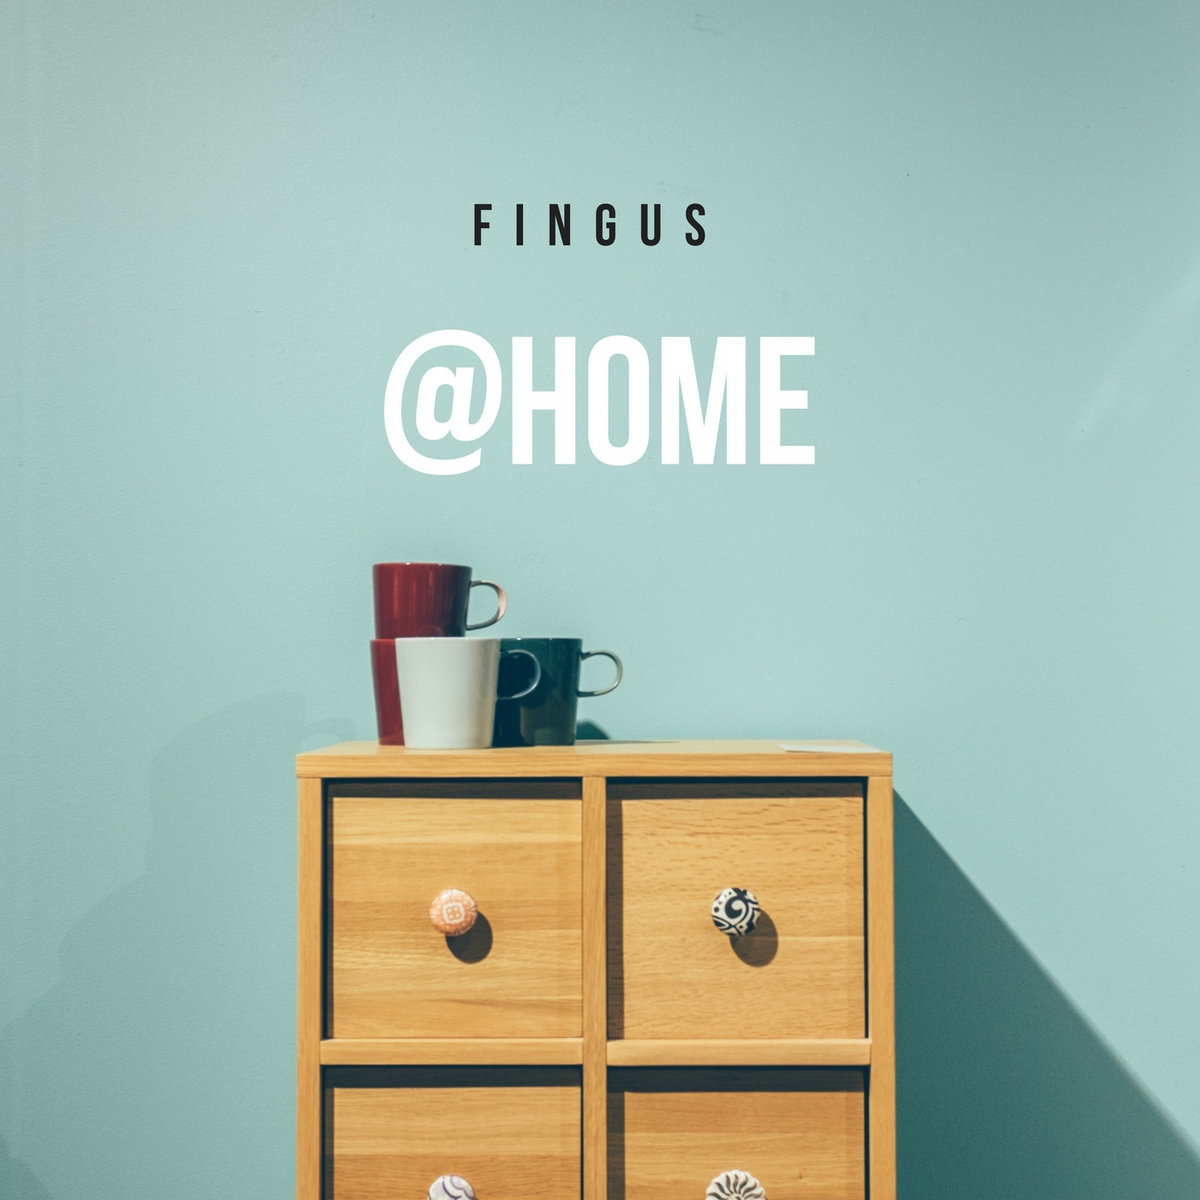 At Home by Fingus